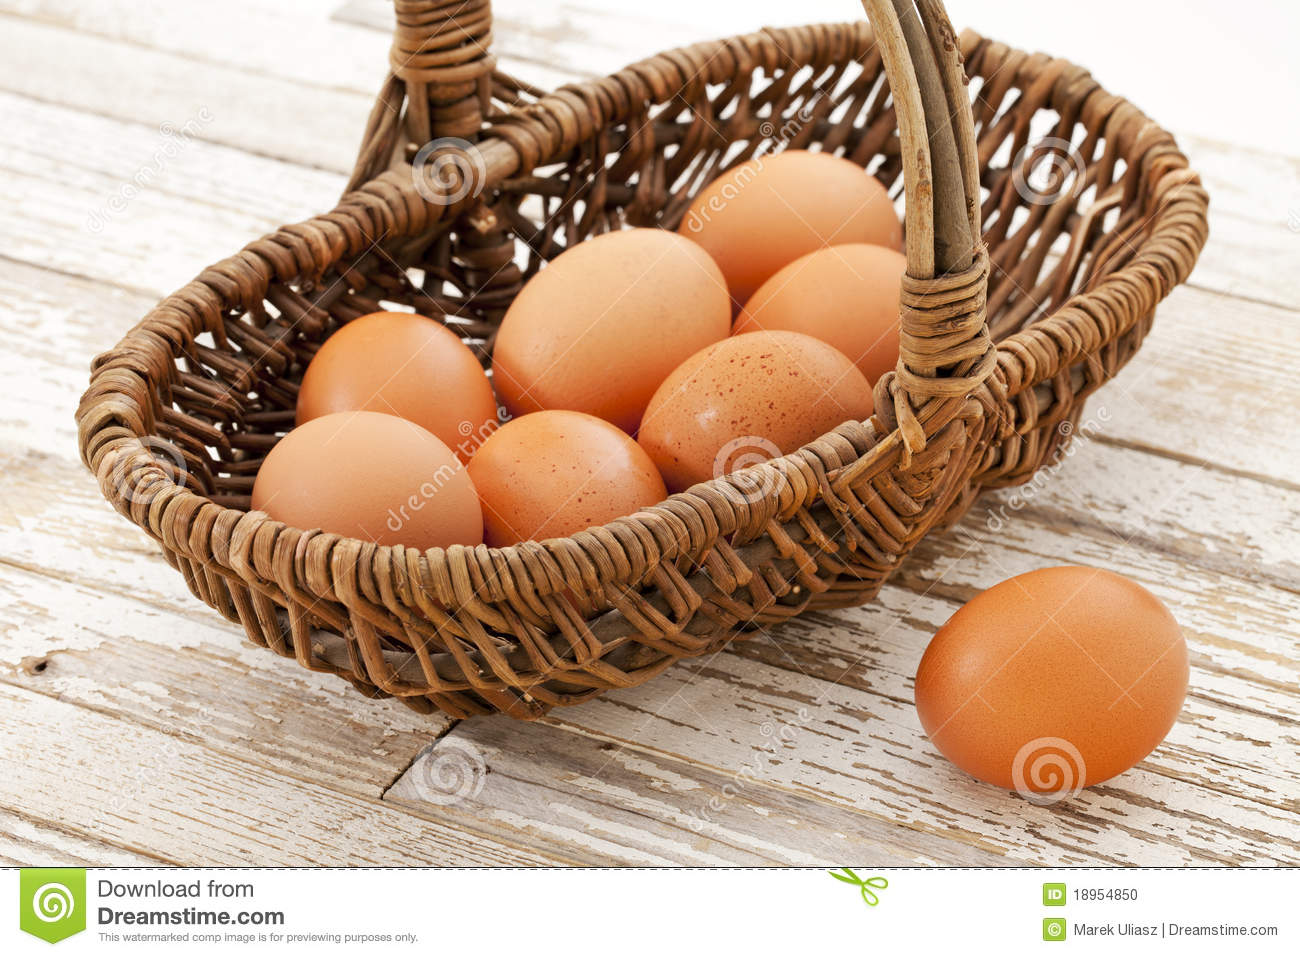 Basket Of Brown Chicken Eggs Against Grunge Wooden Table With White